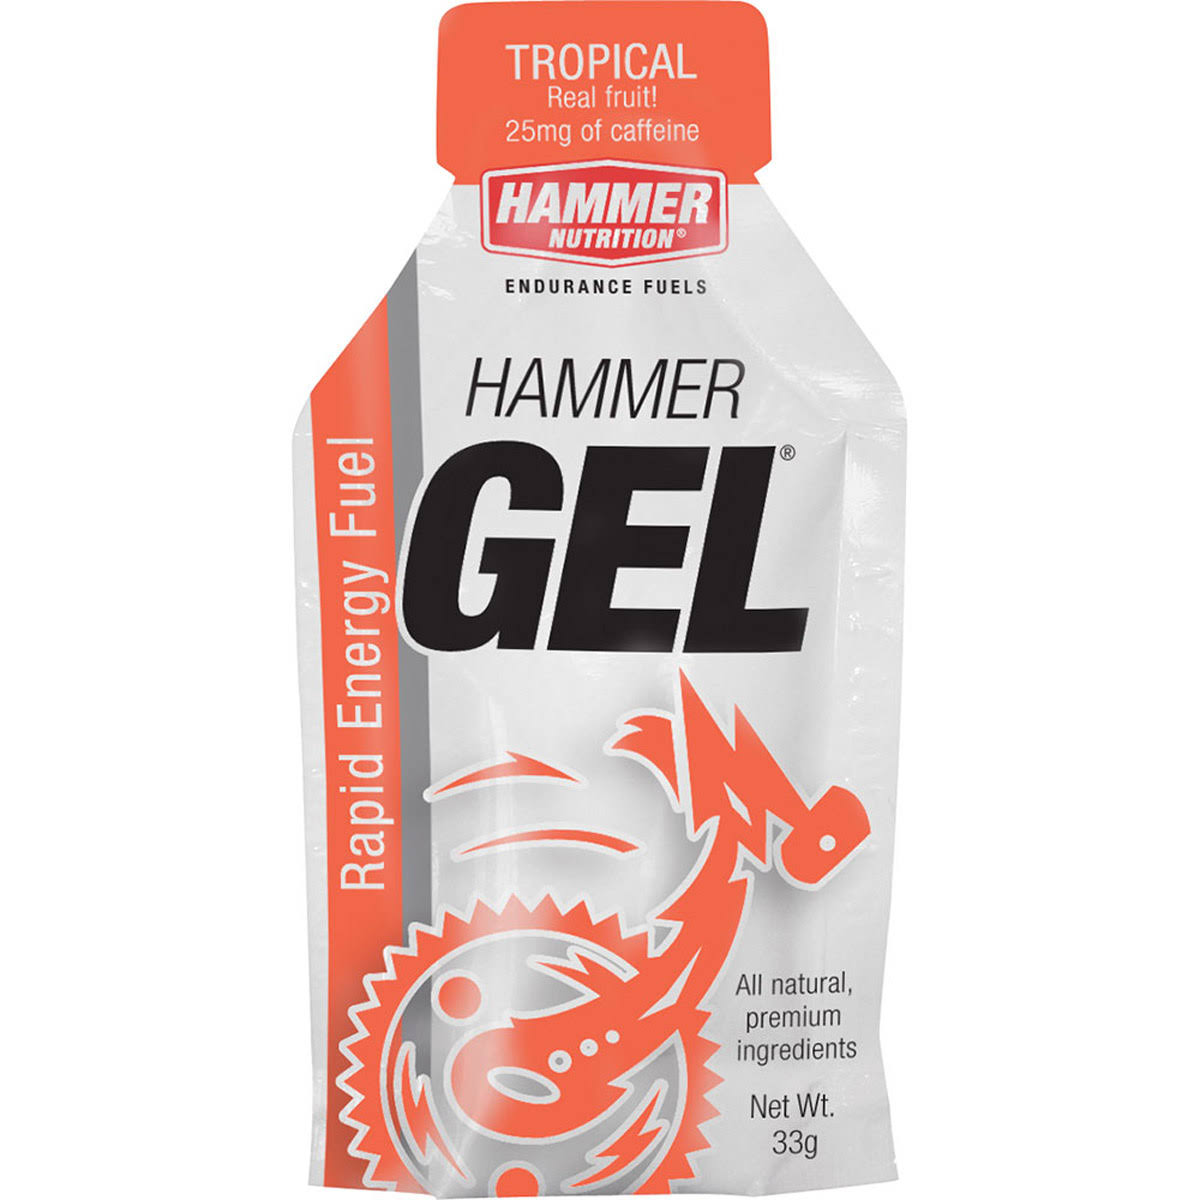 Hammer Nutrition Rapid Energy Fuel Gel - Tropical